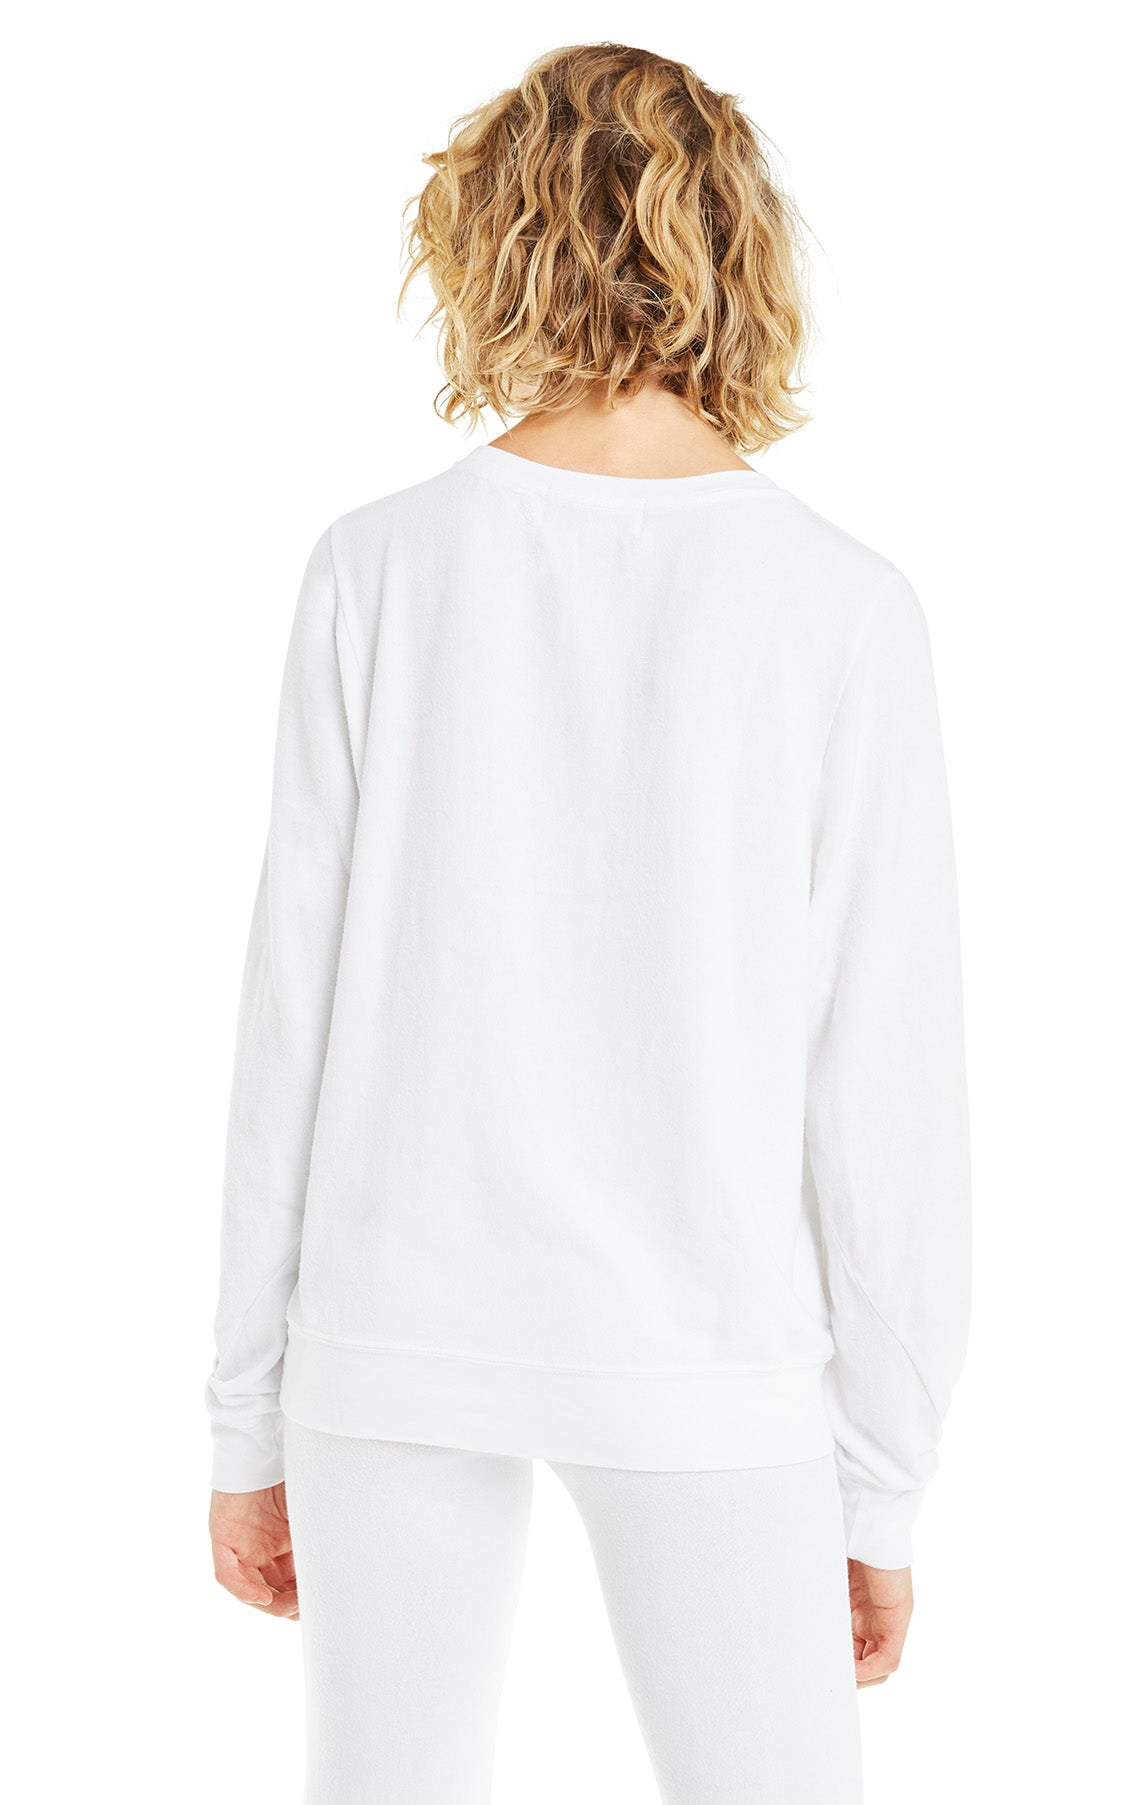 25c9cfd583 Women's Baggy Beach Jumper White Oversized Pullover – Wildfox Couture